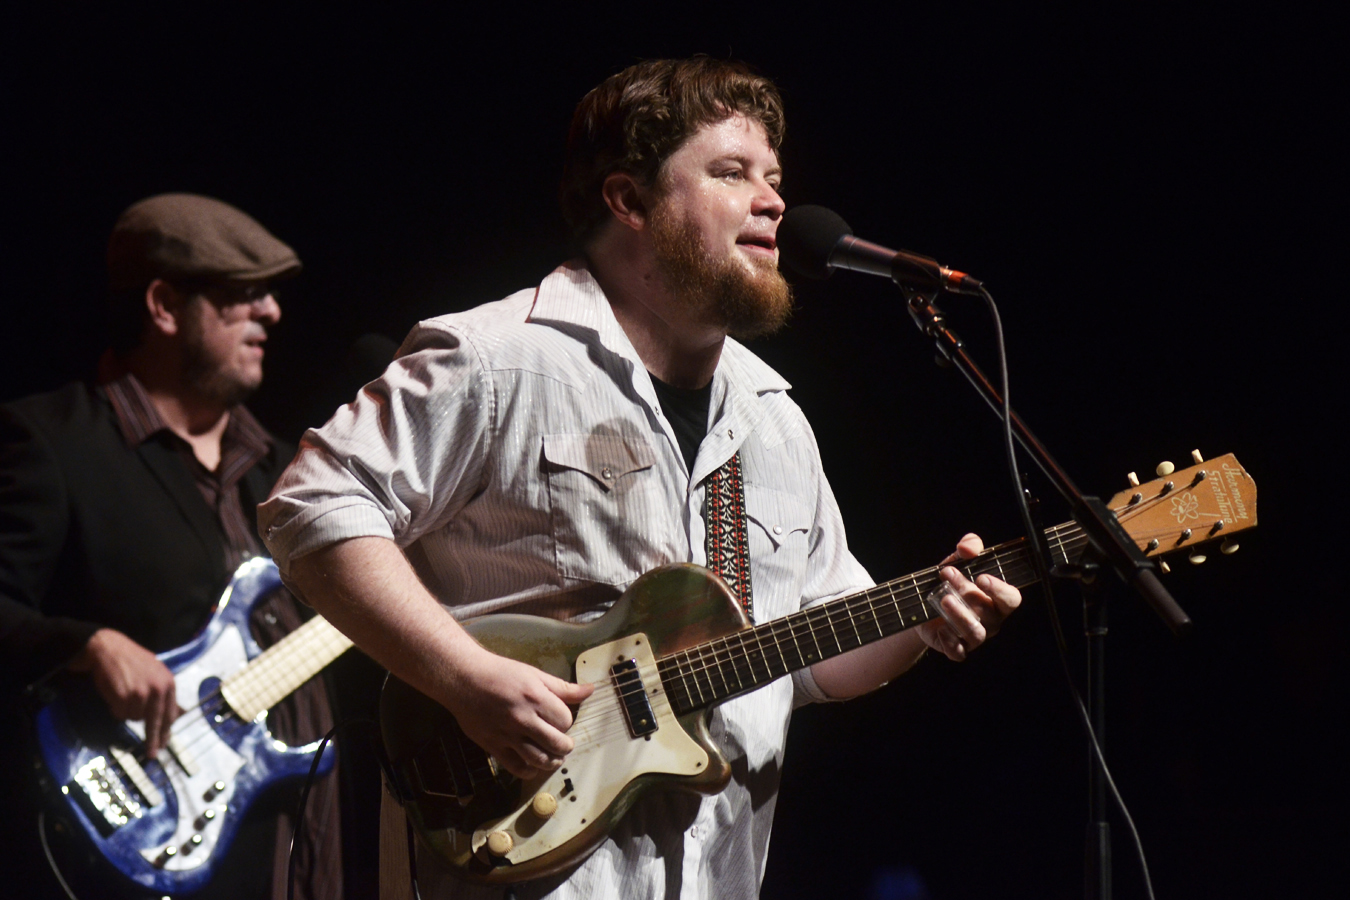 For this performance, Fowler is backed by his own Tampa-based trio.